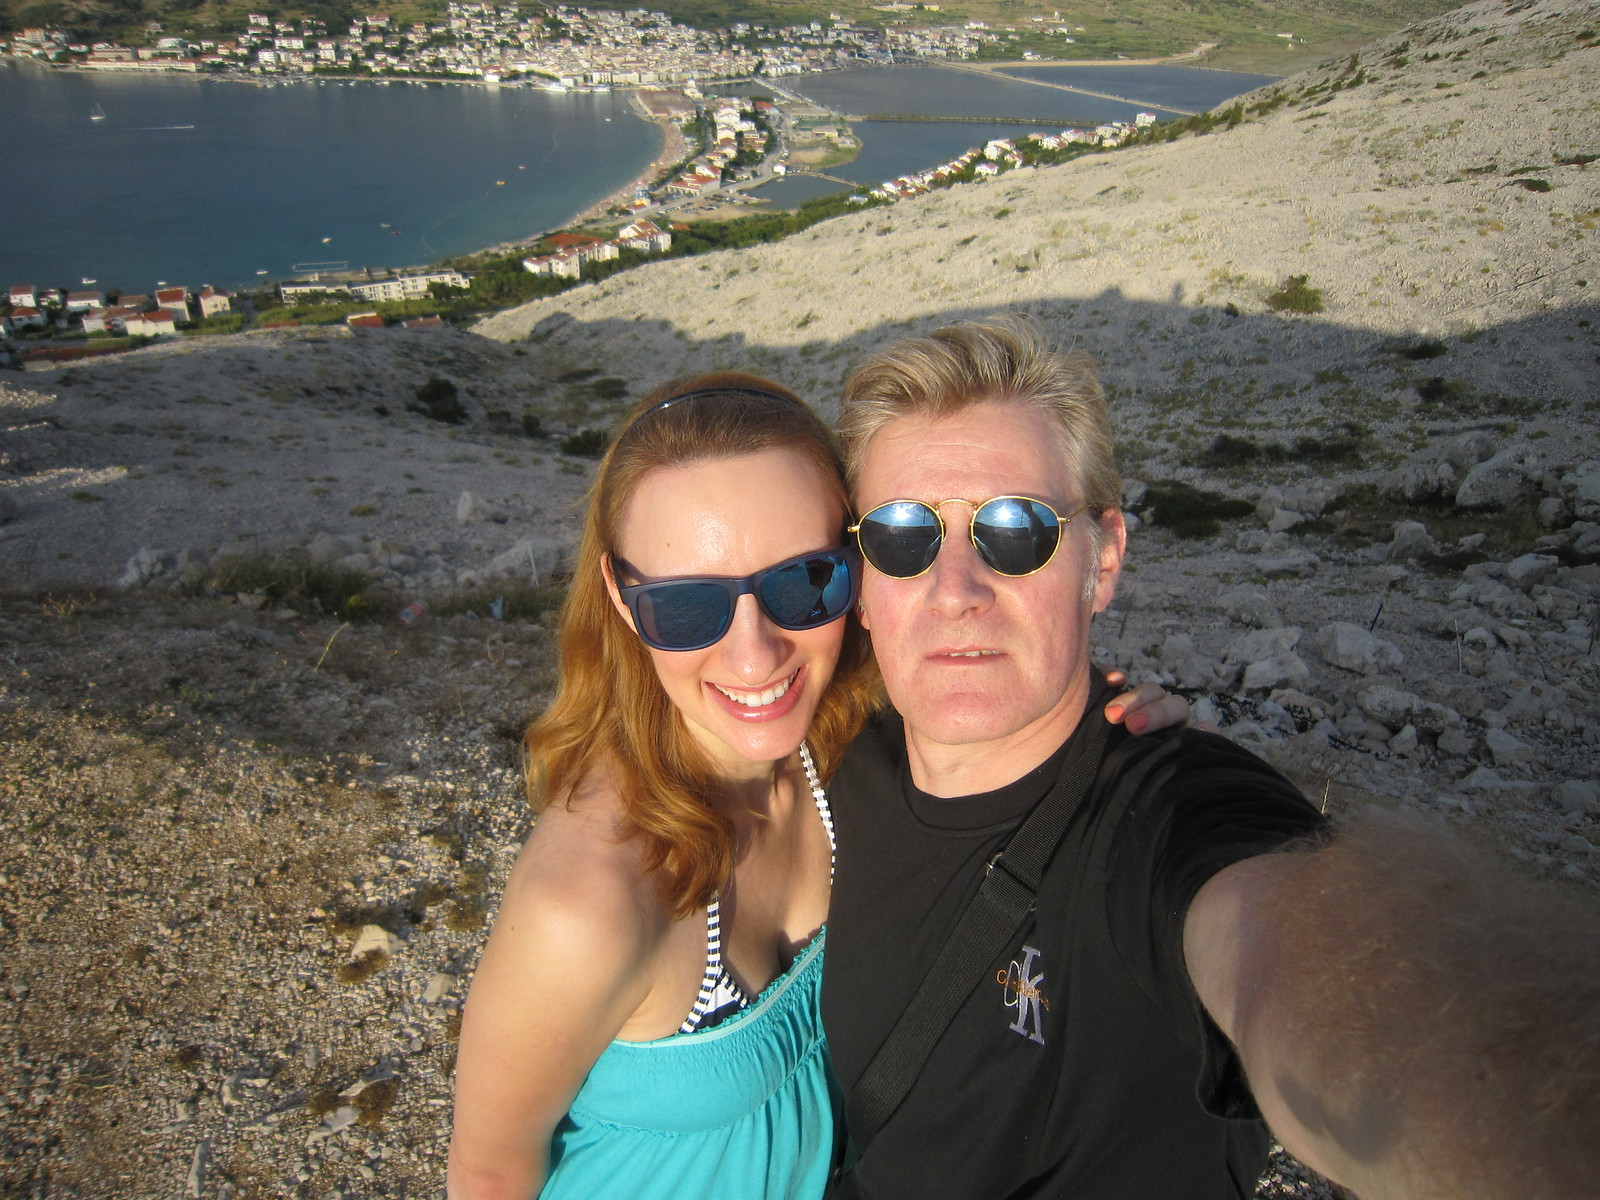 pag view island capital city town bay view overlooking croatia summer sunset holiday vacation 2015 august